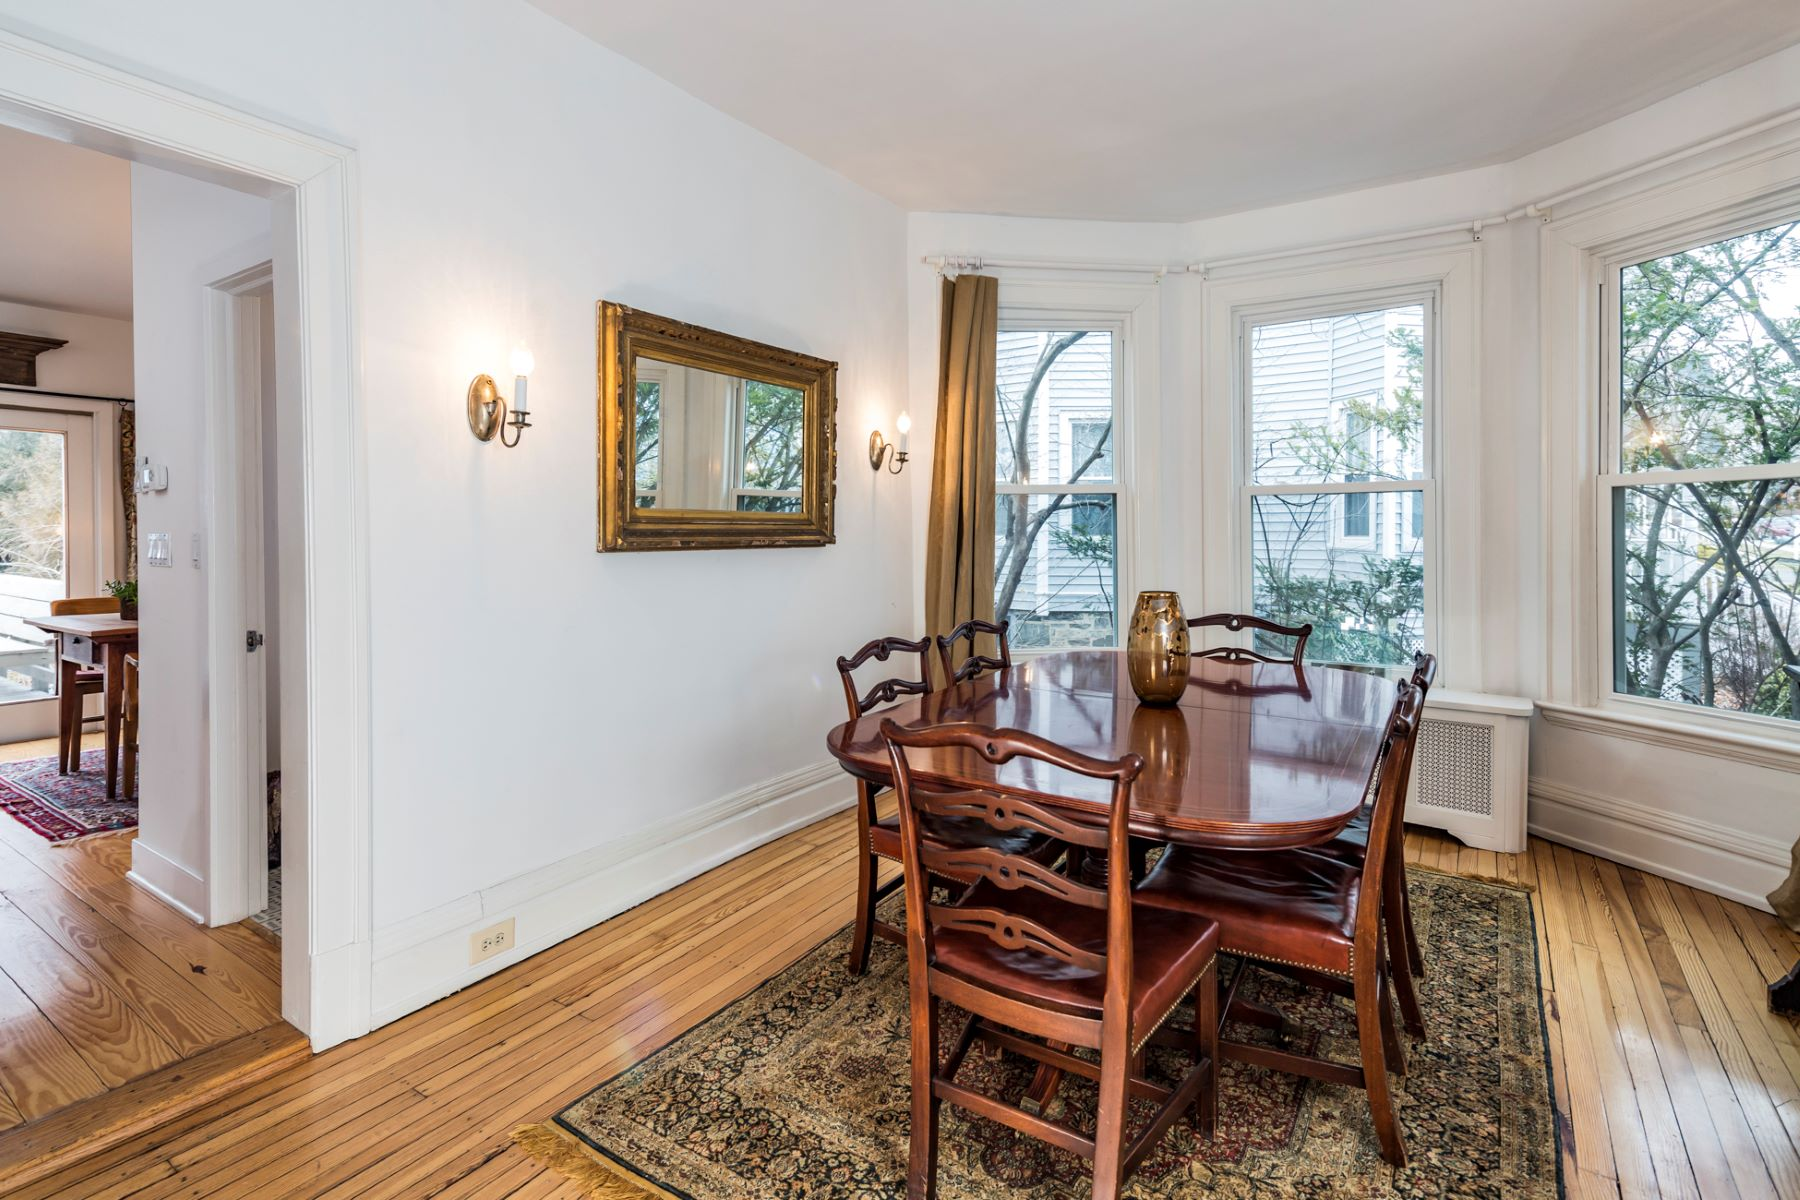 Additional photo for property listing at Heart-of-town Living, Turn-of-the-Century Charm 30 Vandeventer Avenue, Princeton, New Jersey 08542 United States